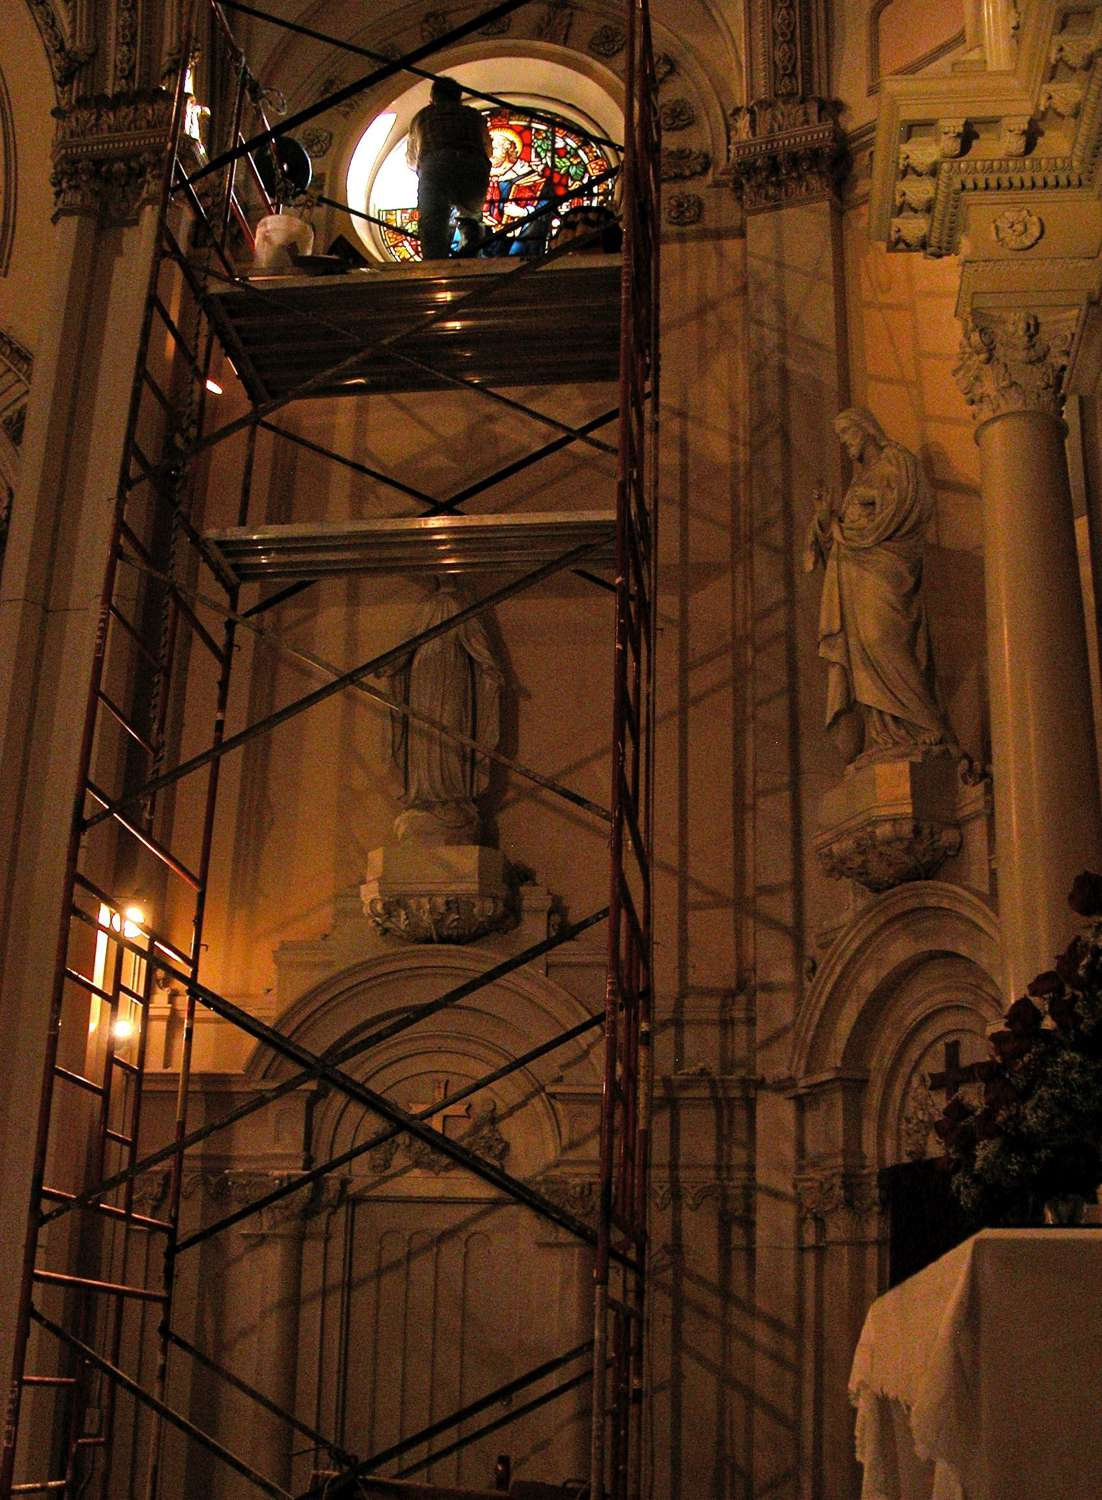 Annunciation repairs